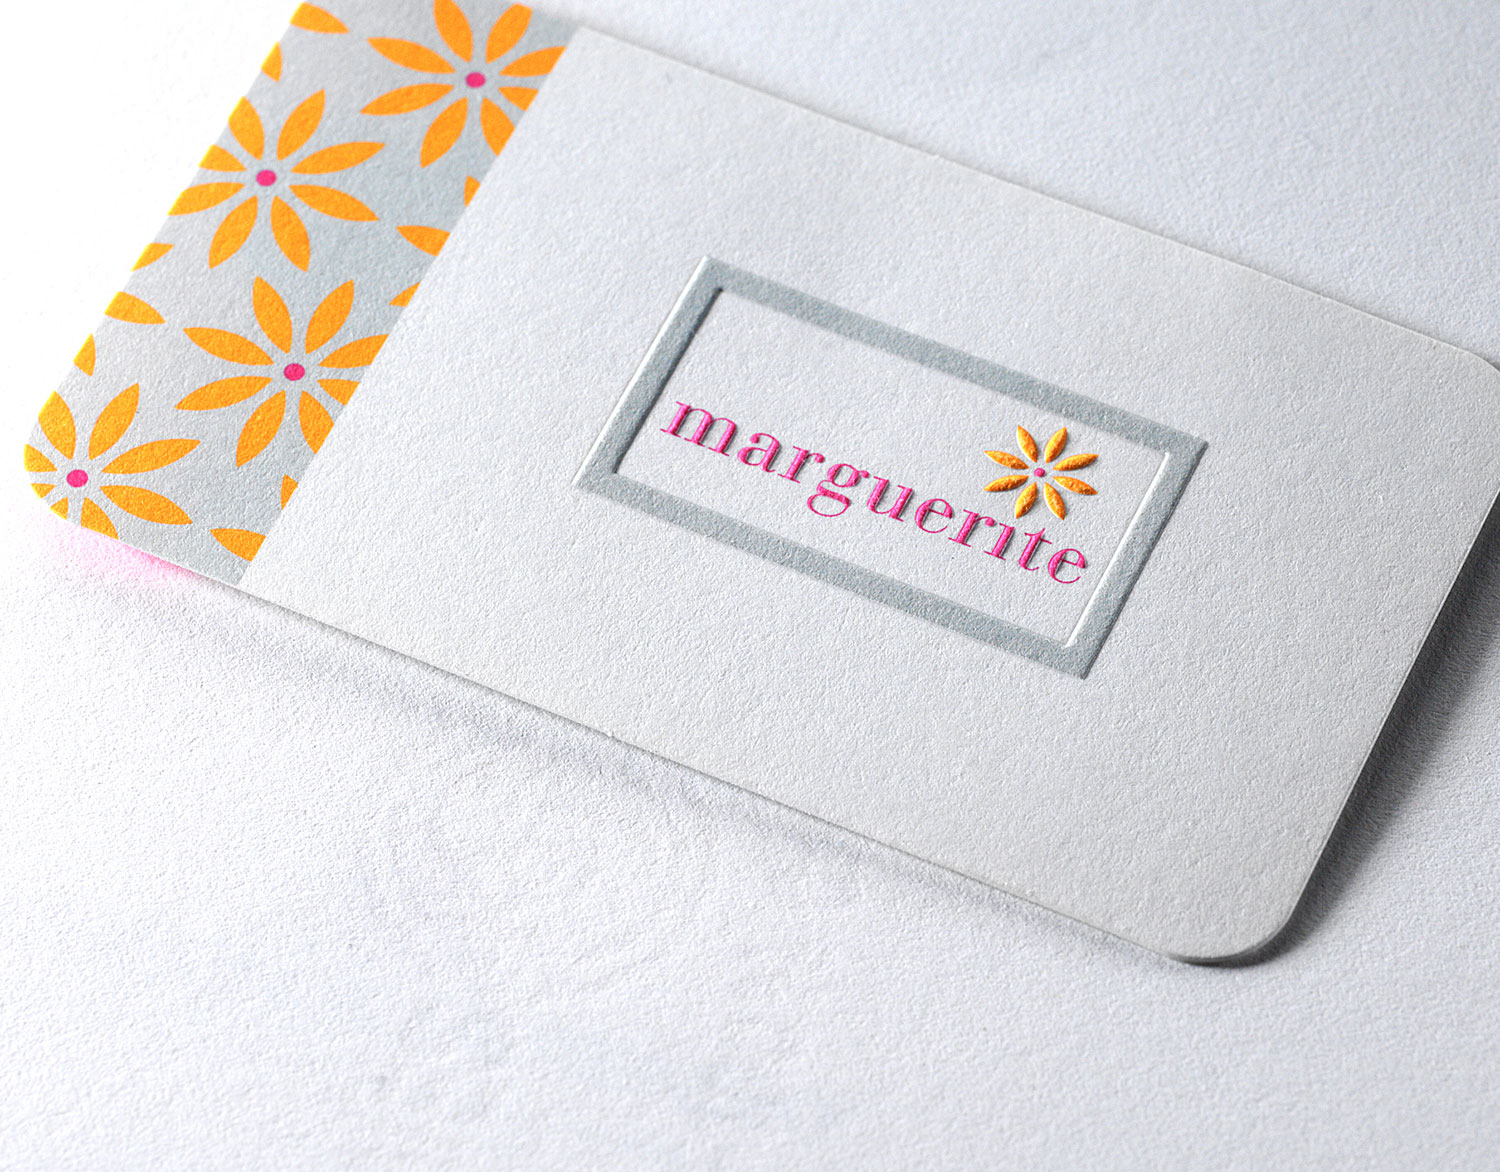 MARGUERITE-HANDBAG-LOGO-STATIONERY-SLIDE.jpg